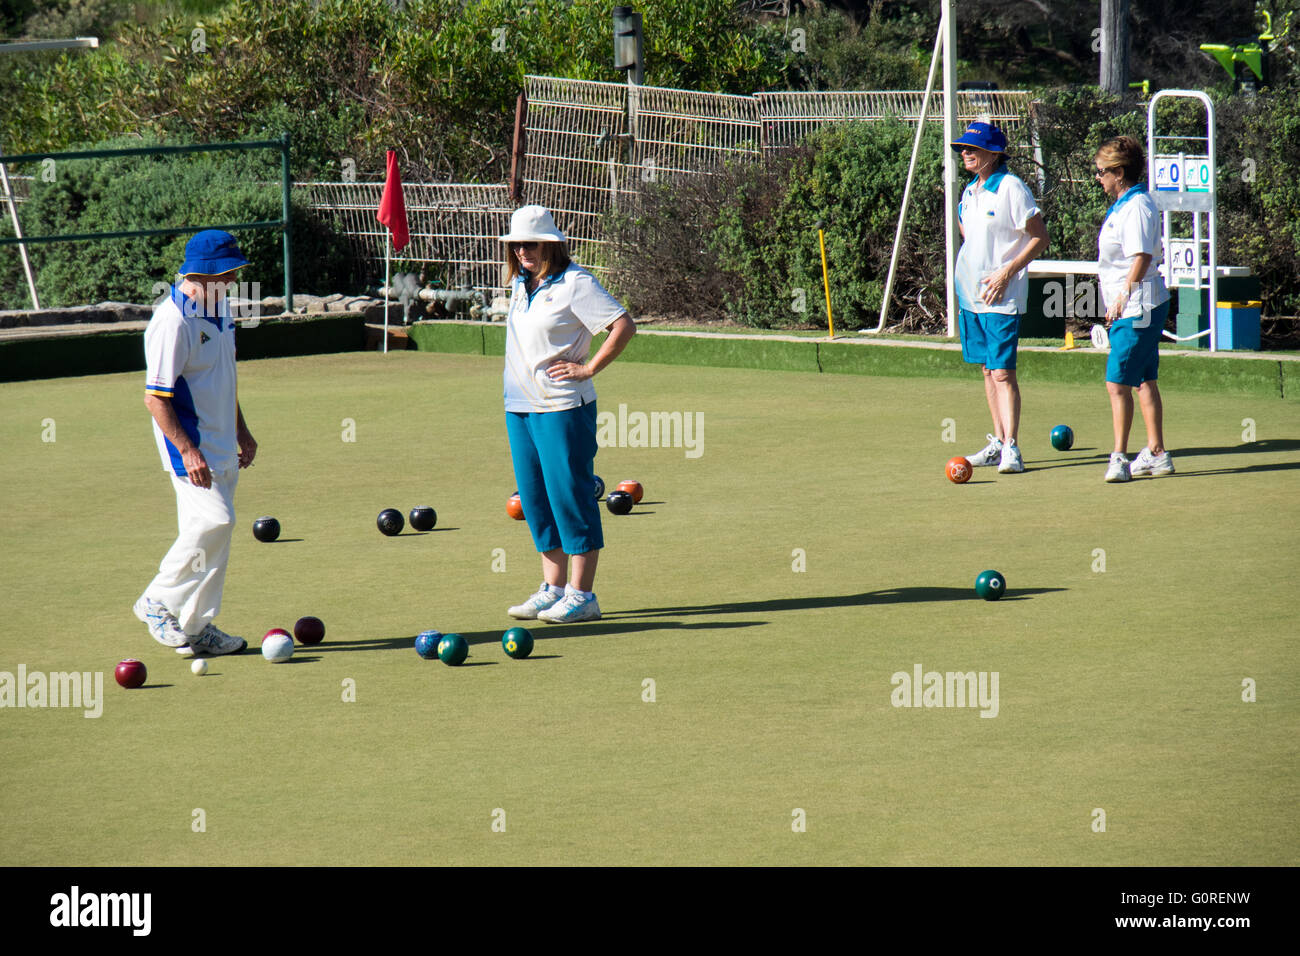 People playing lawn bowls. - Stock Image